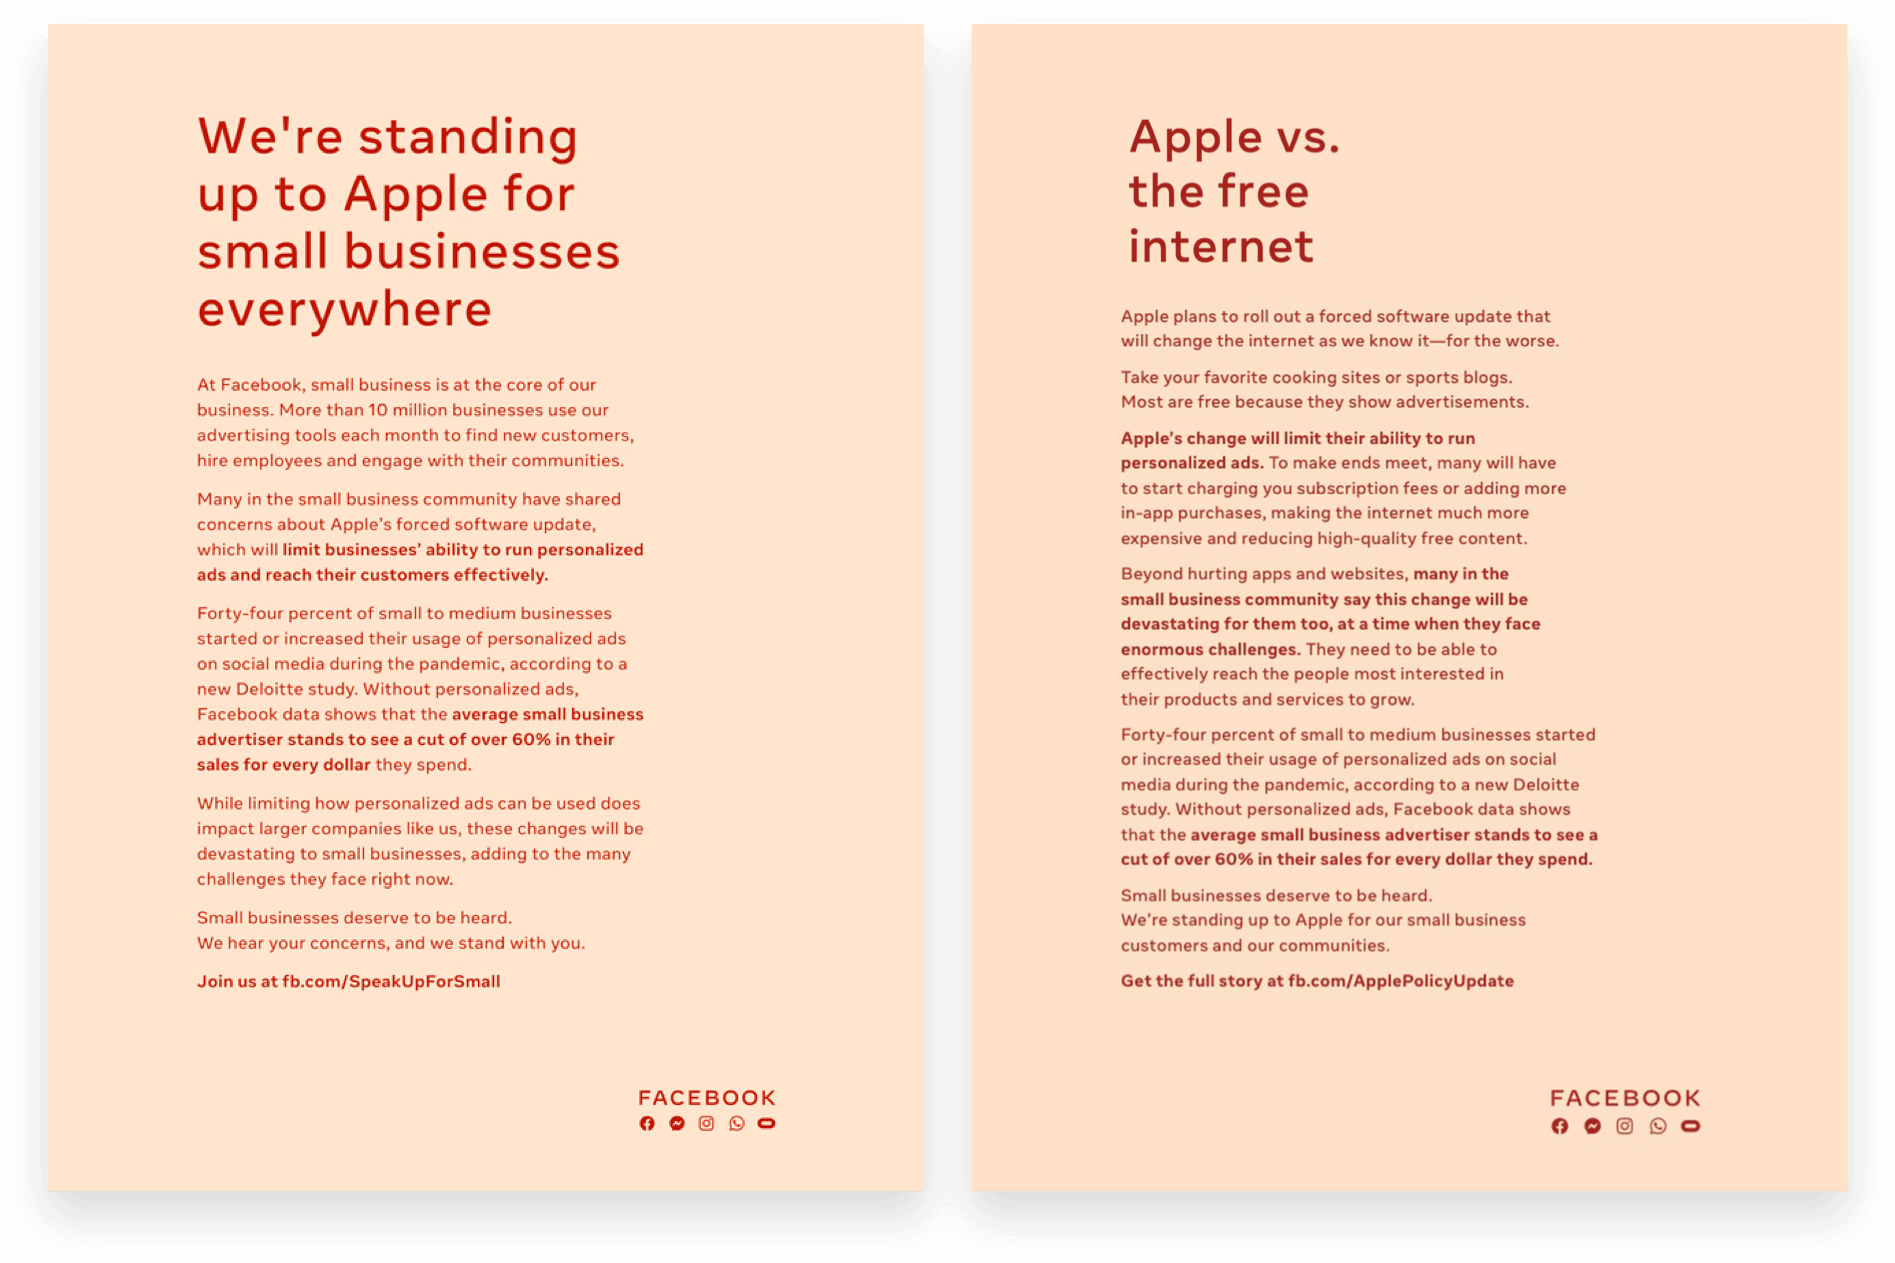 Facebook's Full-Page Ads Against Apple iOS 14 Privacy Update from 12-16-2020 and 12-17-2020 — We're standing up to Apple for small businesses everywhere and Apple vs. the free internet